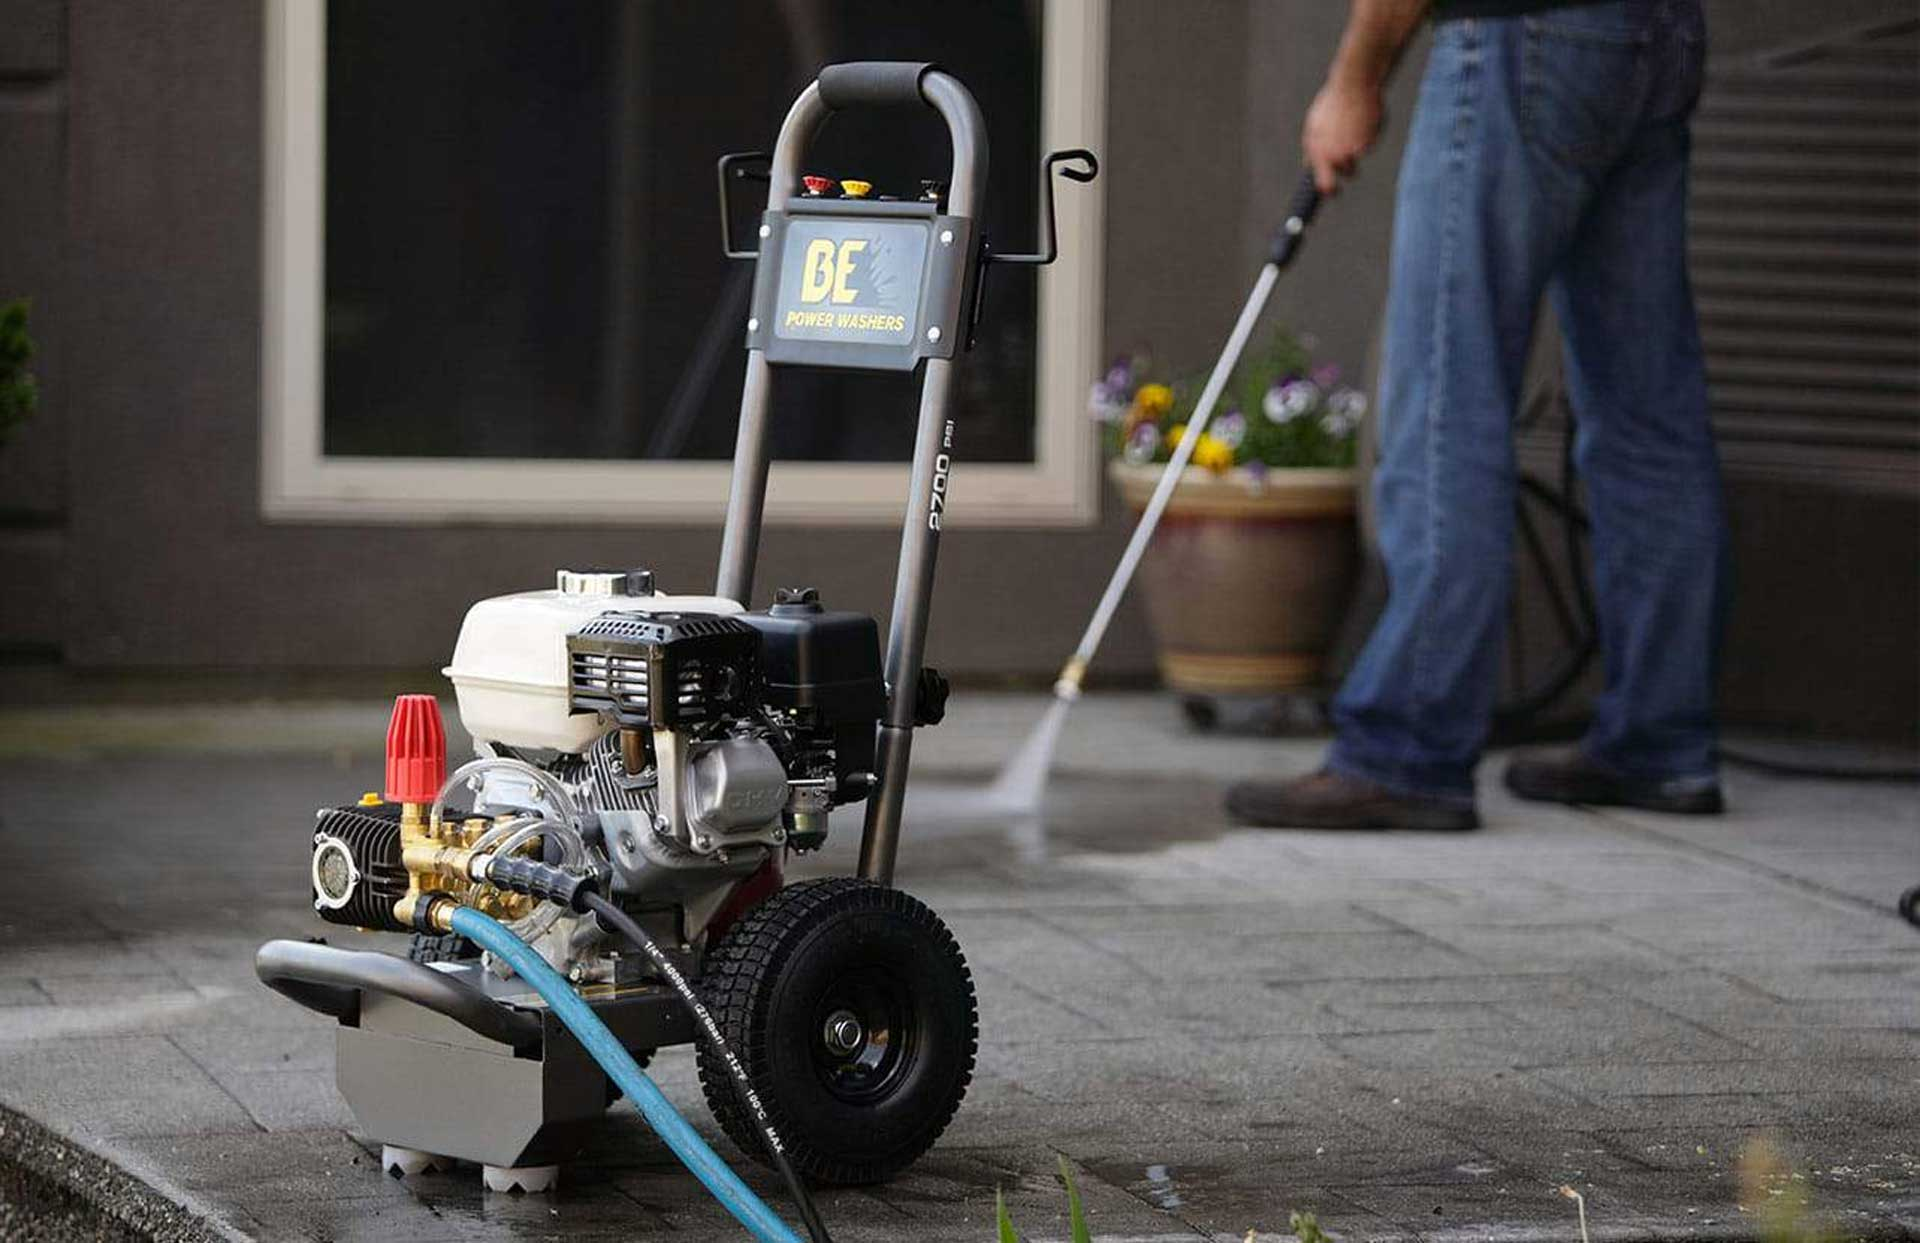 Top 10 Best Gas Pressure Washers 2020 Buyers Guides & Reviews